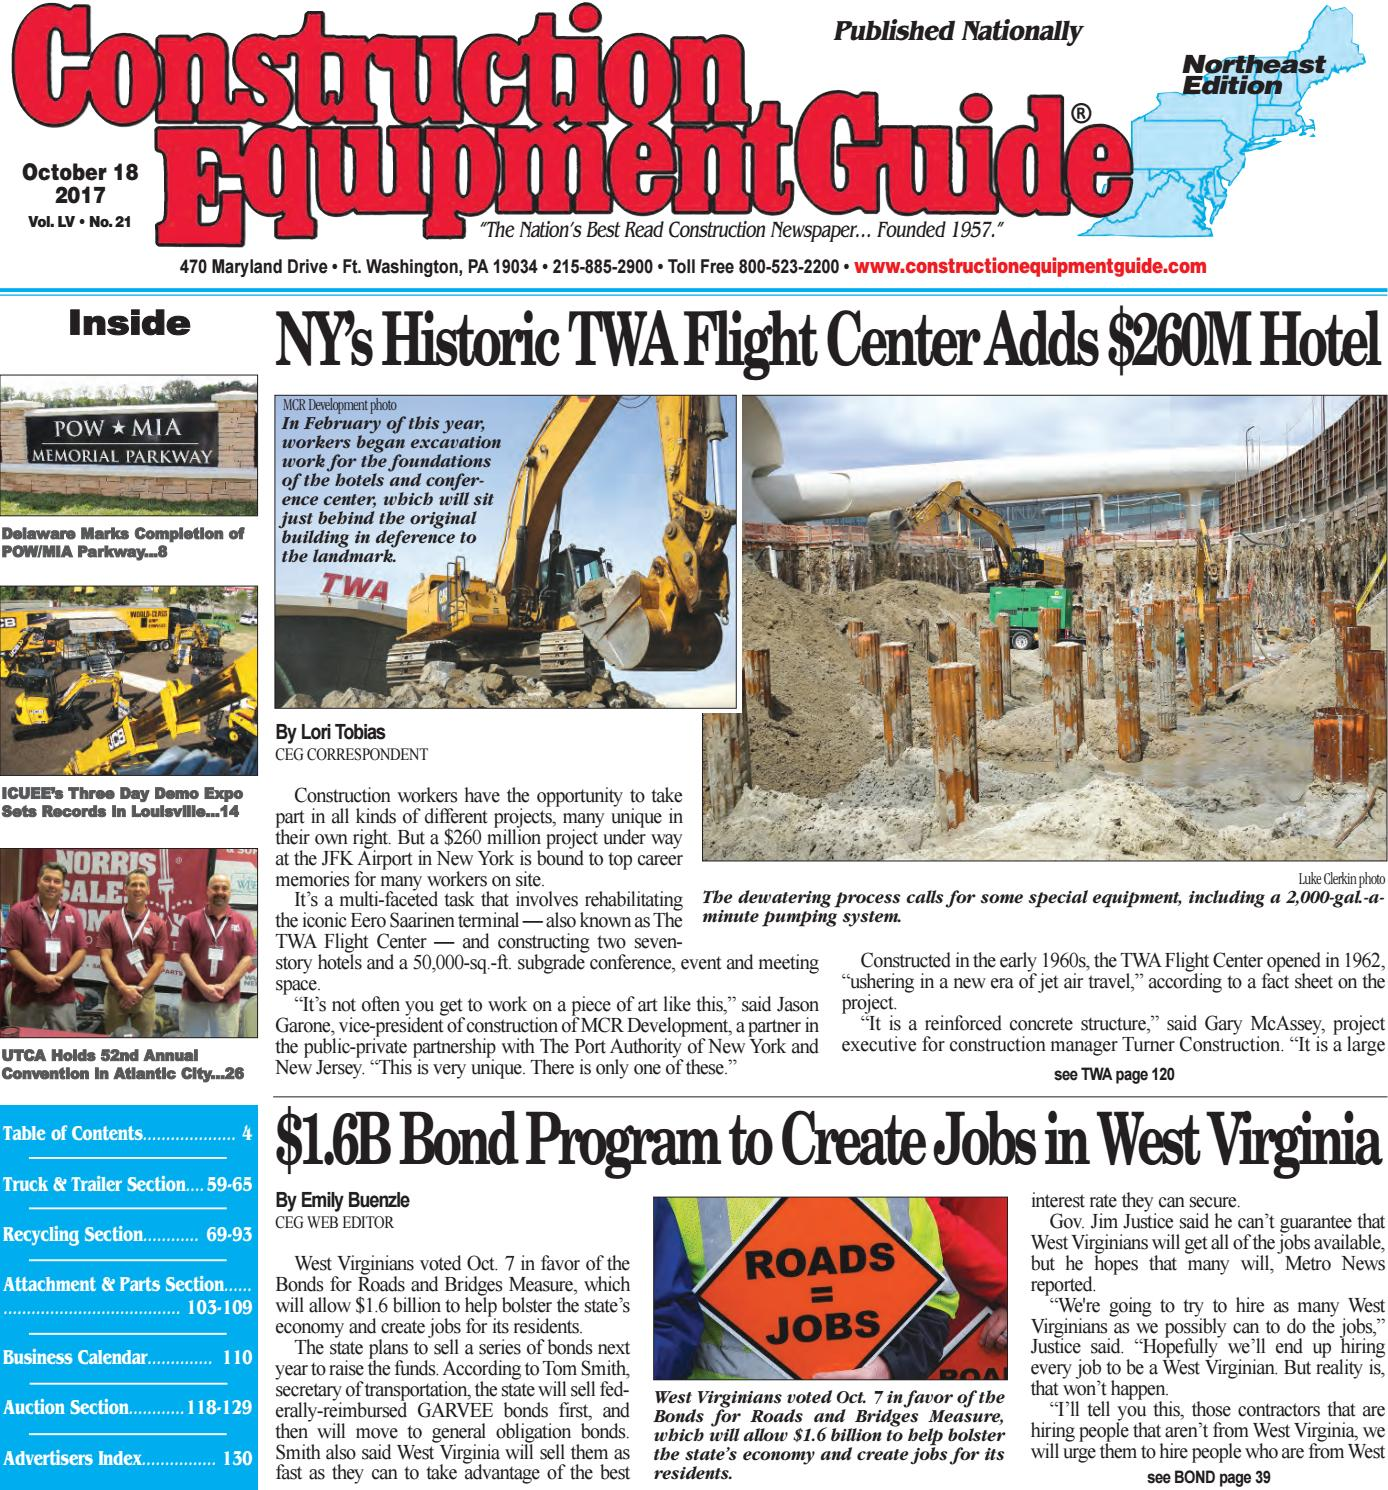 Northeast 21 October 18, 2017 by Construction Equipment